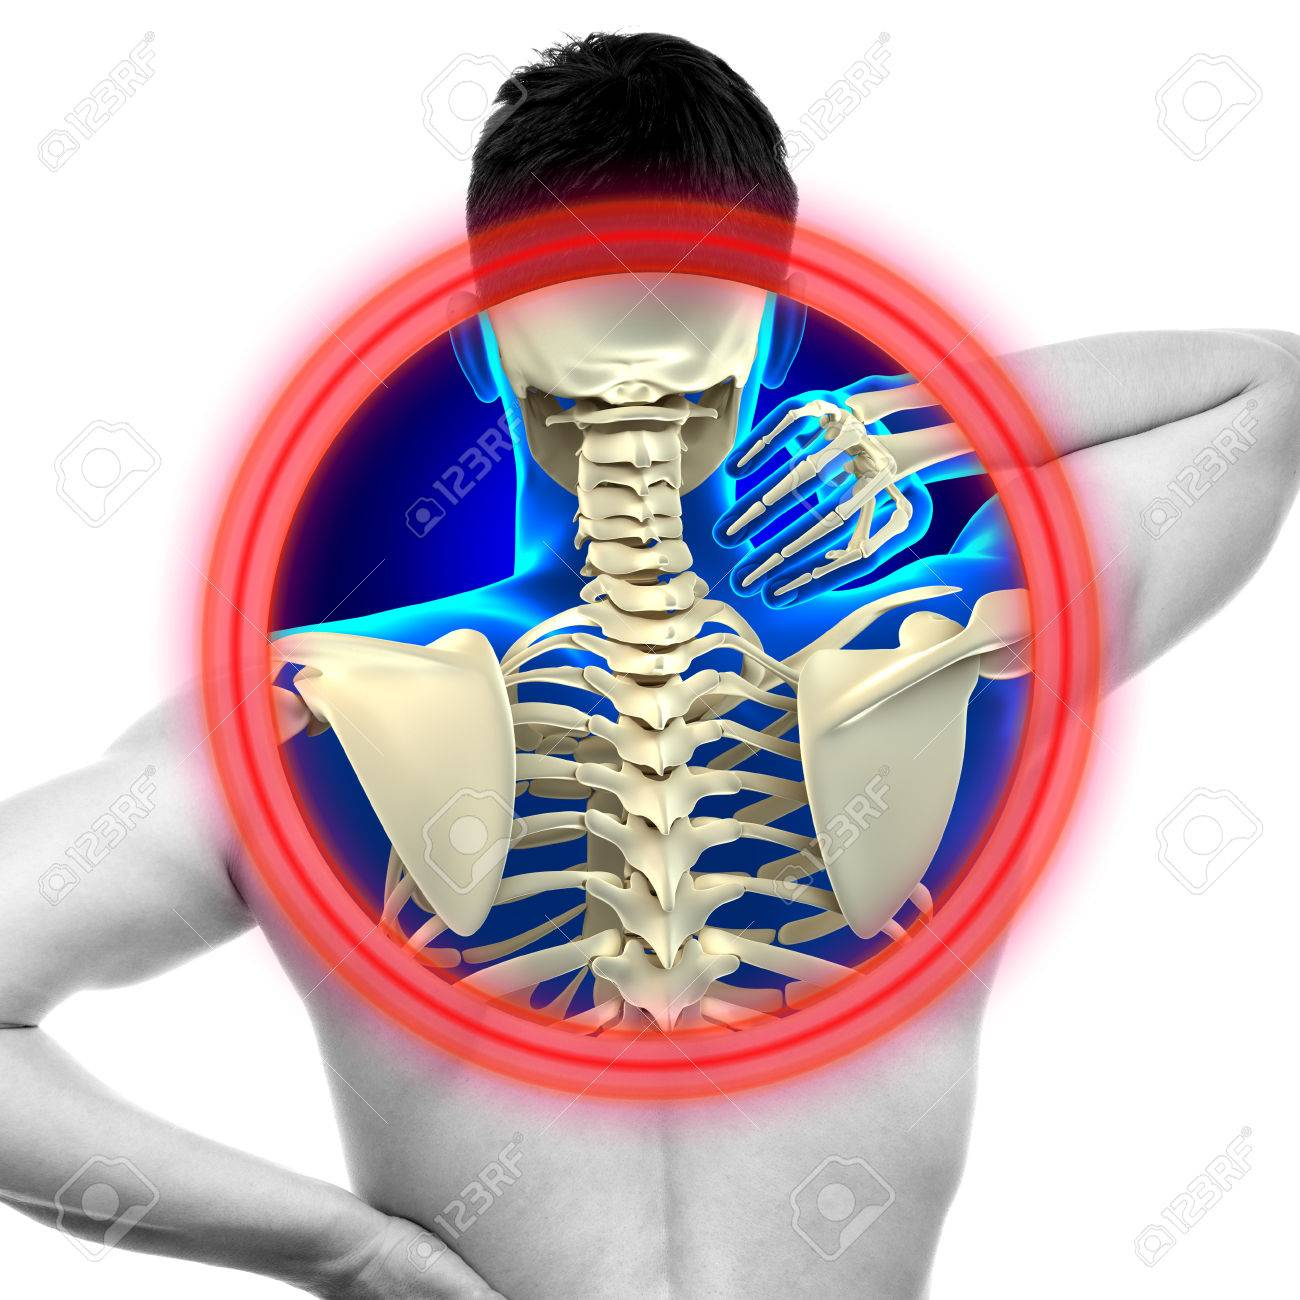 Neck Pain Cervical Spine Isolated On White Real Anatomy Concept